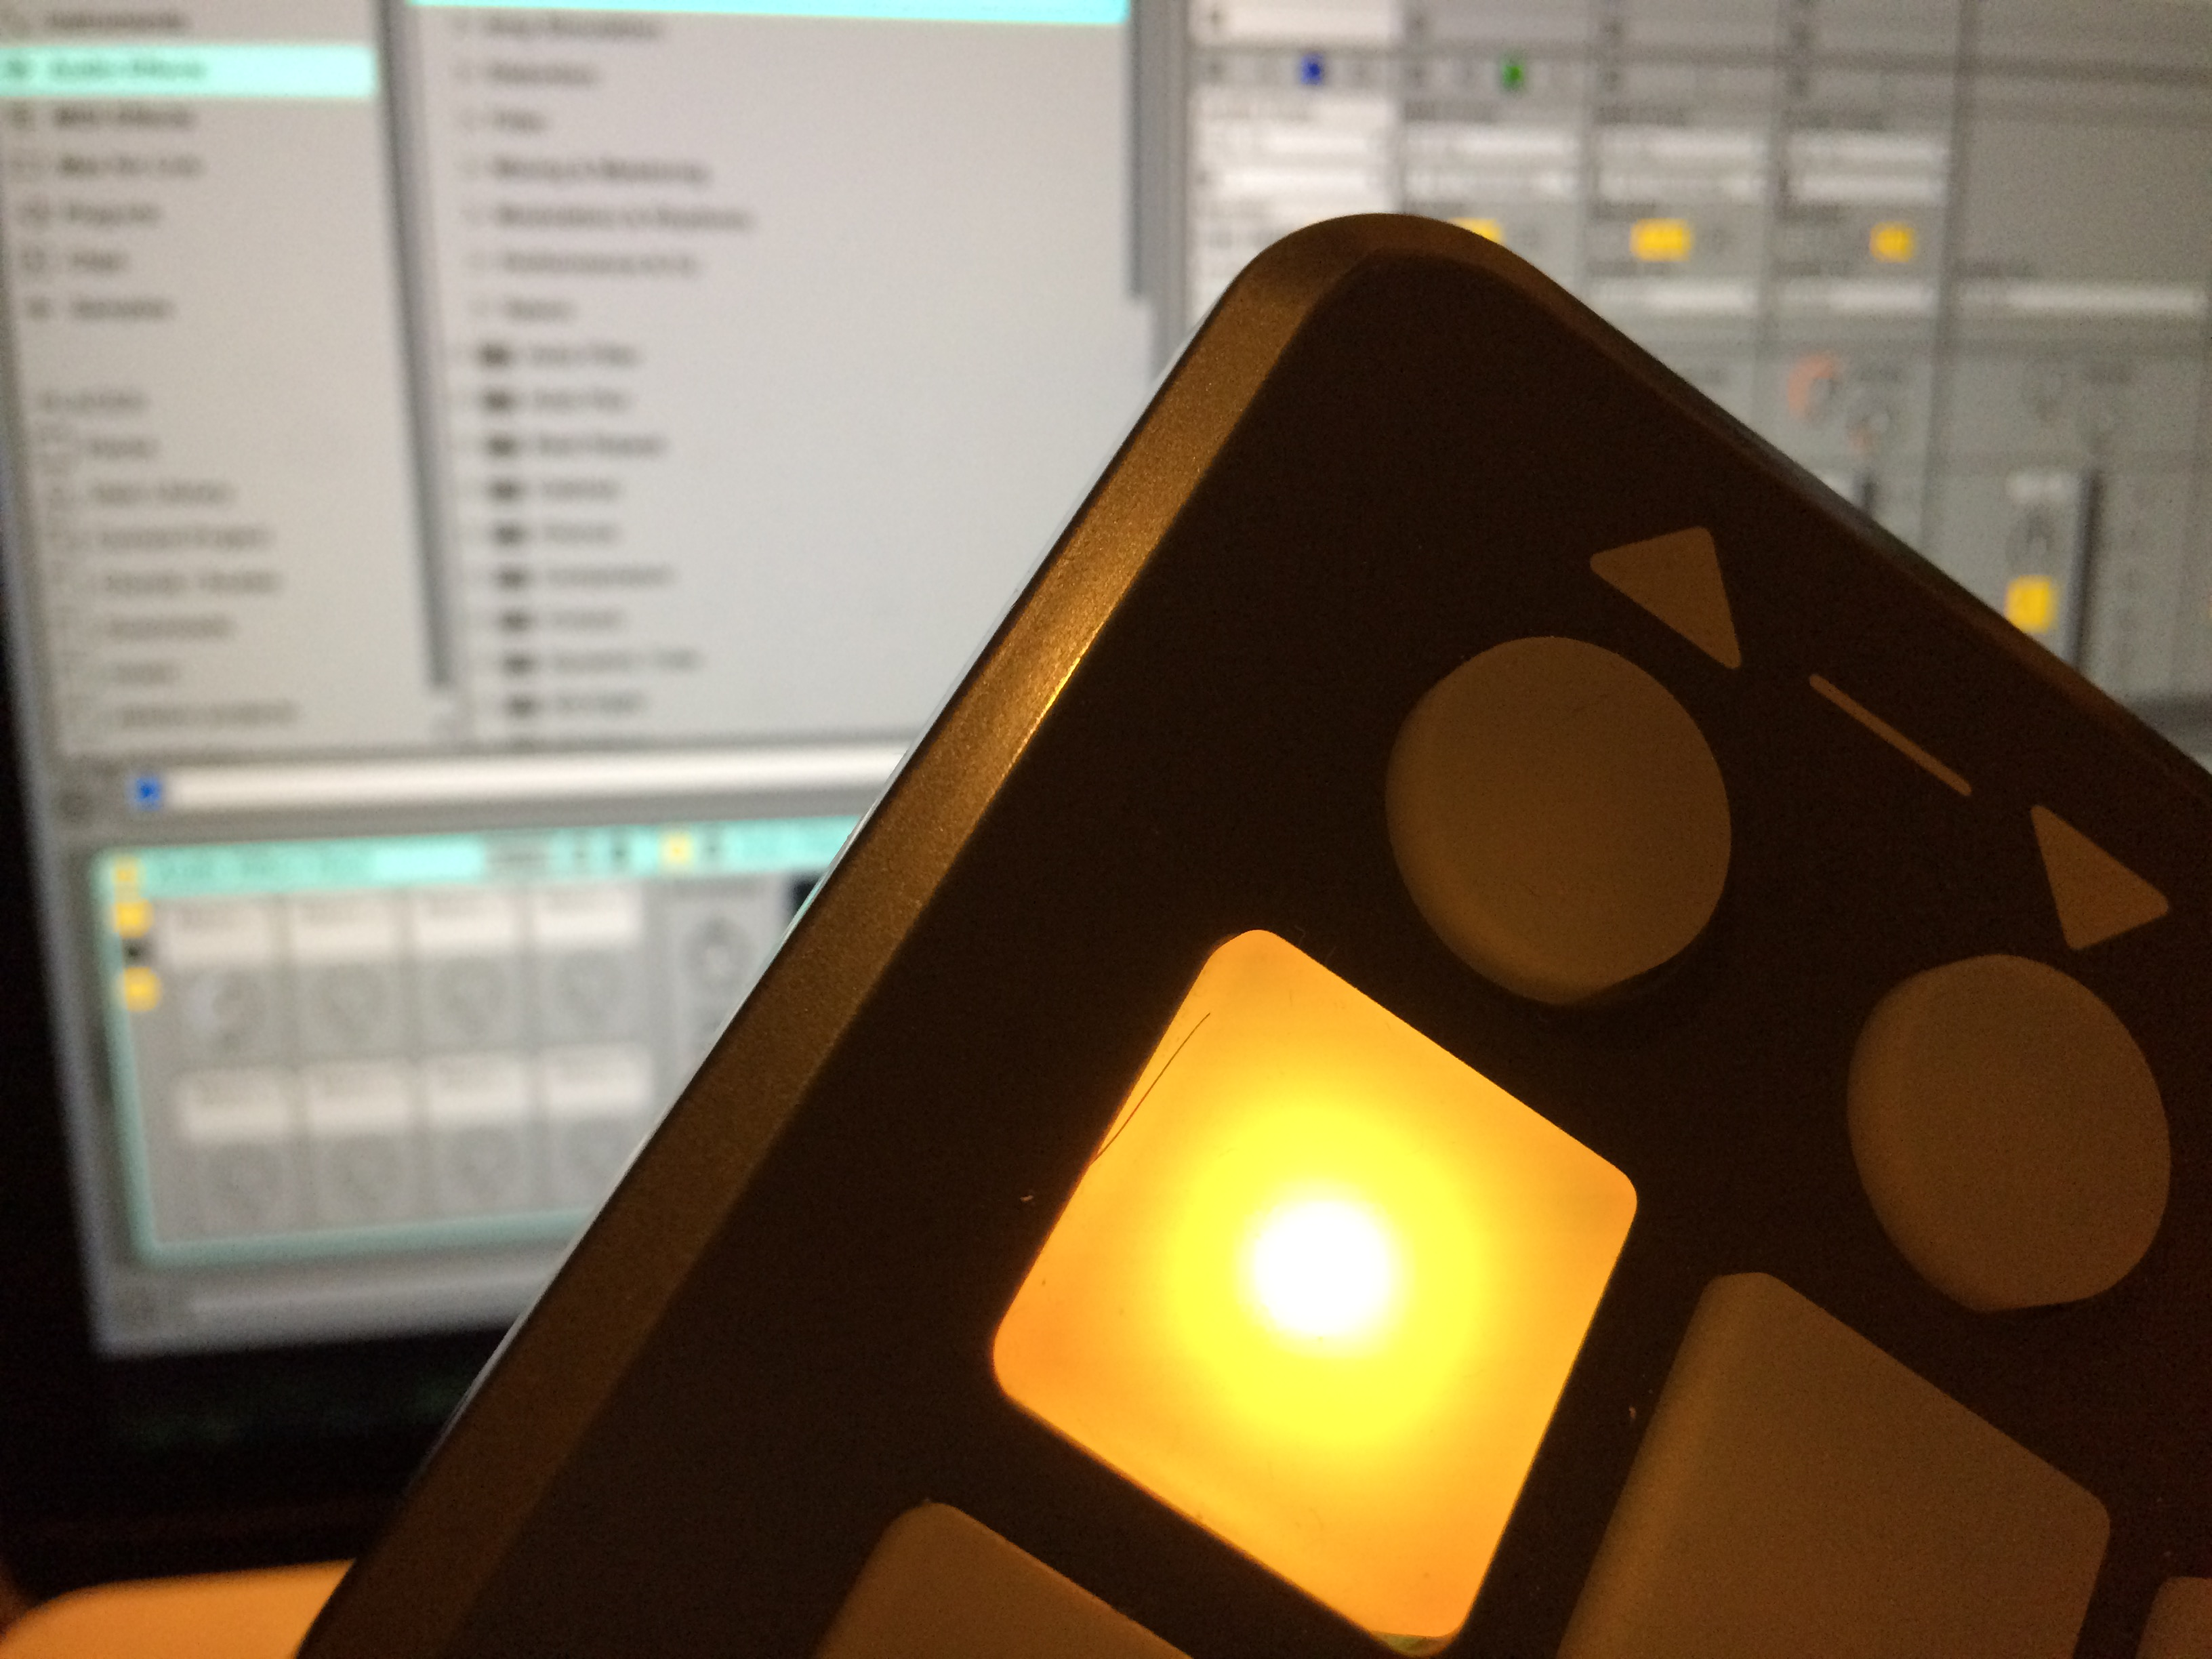 Launchpad S LED yellow with Ableton Live 9